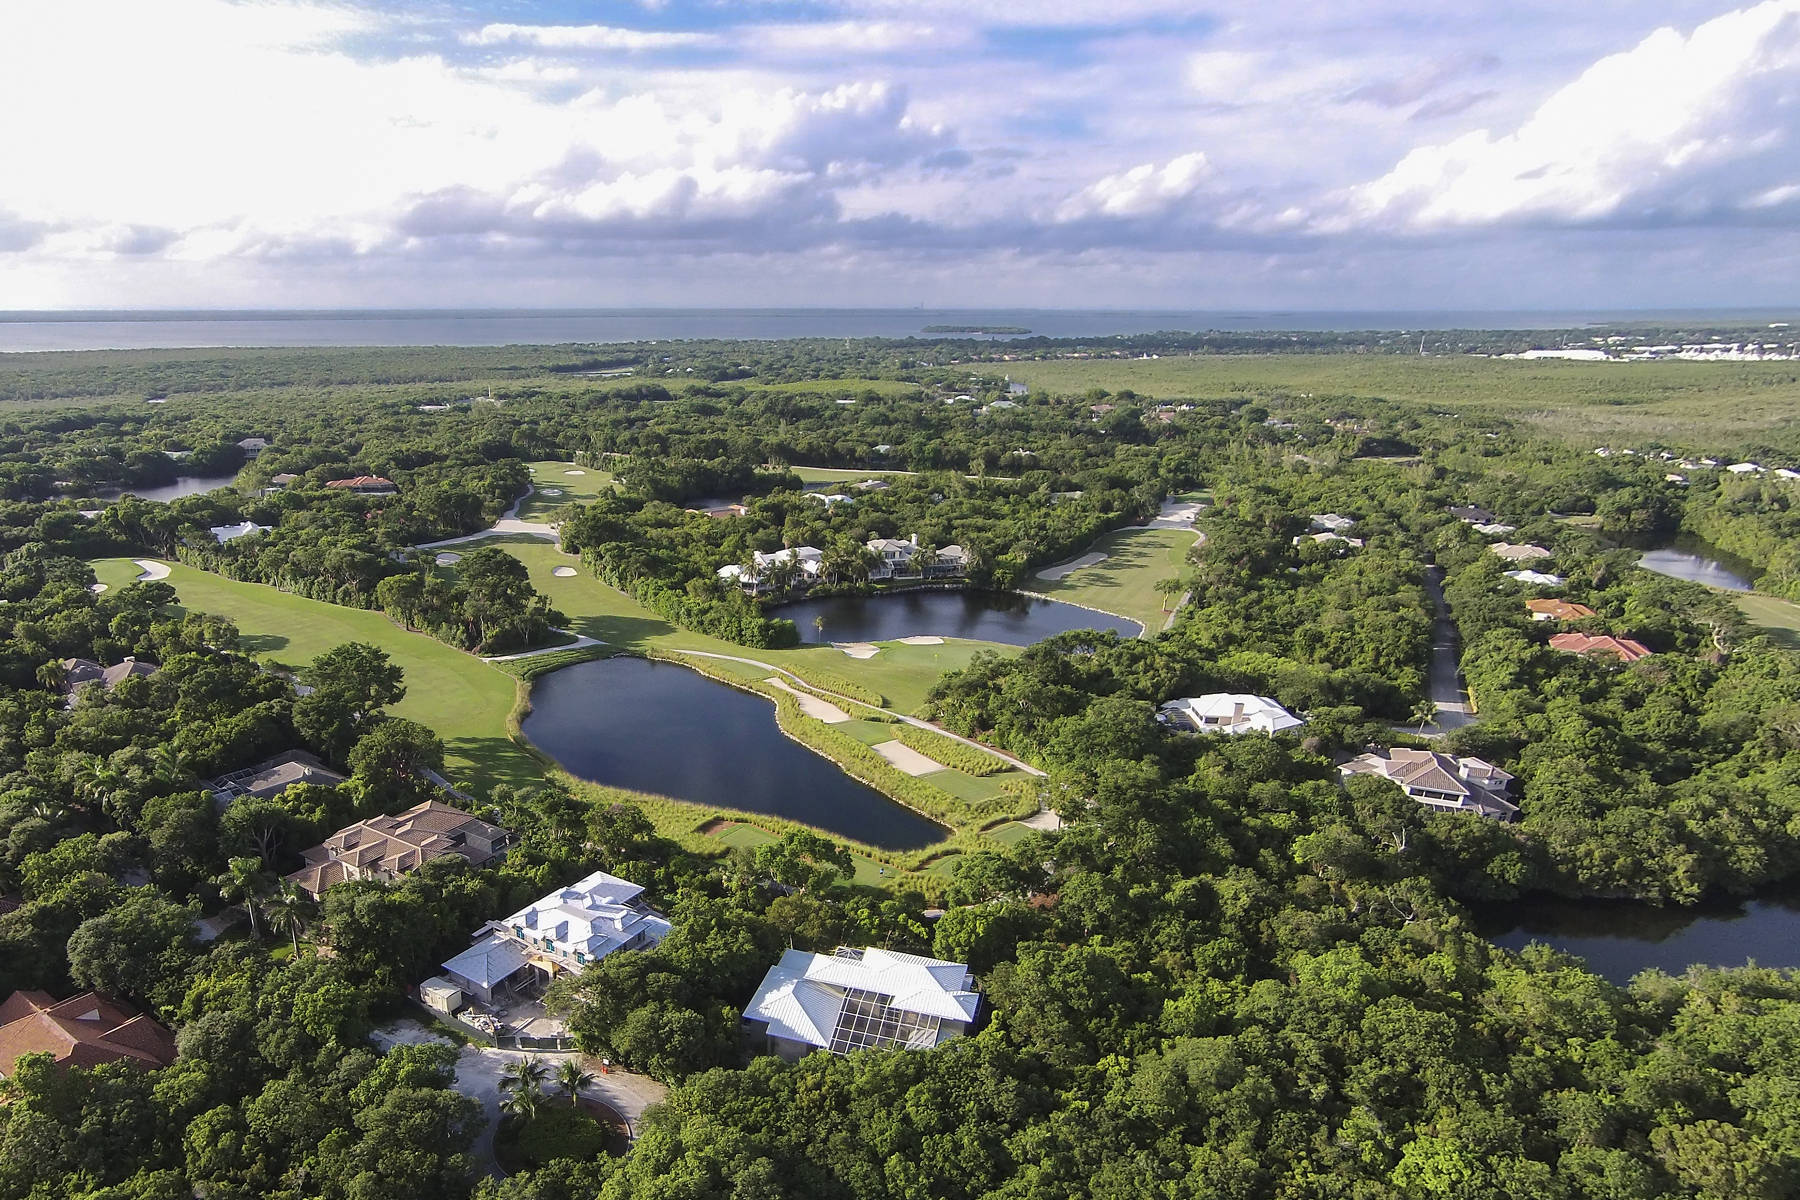 Casa Unifamiliar por un Venta en Panoramic Golf and Lake Views at Ocean Reef 437 South Harbor Drive Key Largo, Florida, 33037 Estados Unidos